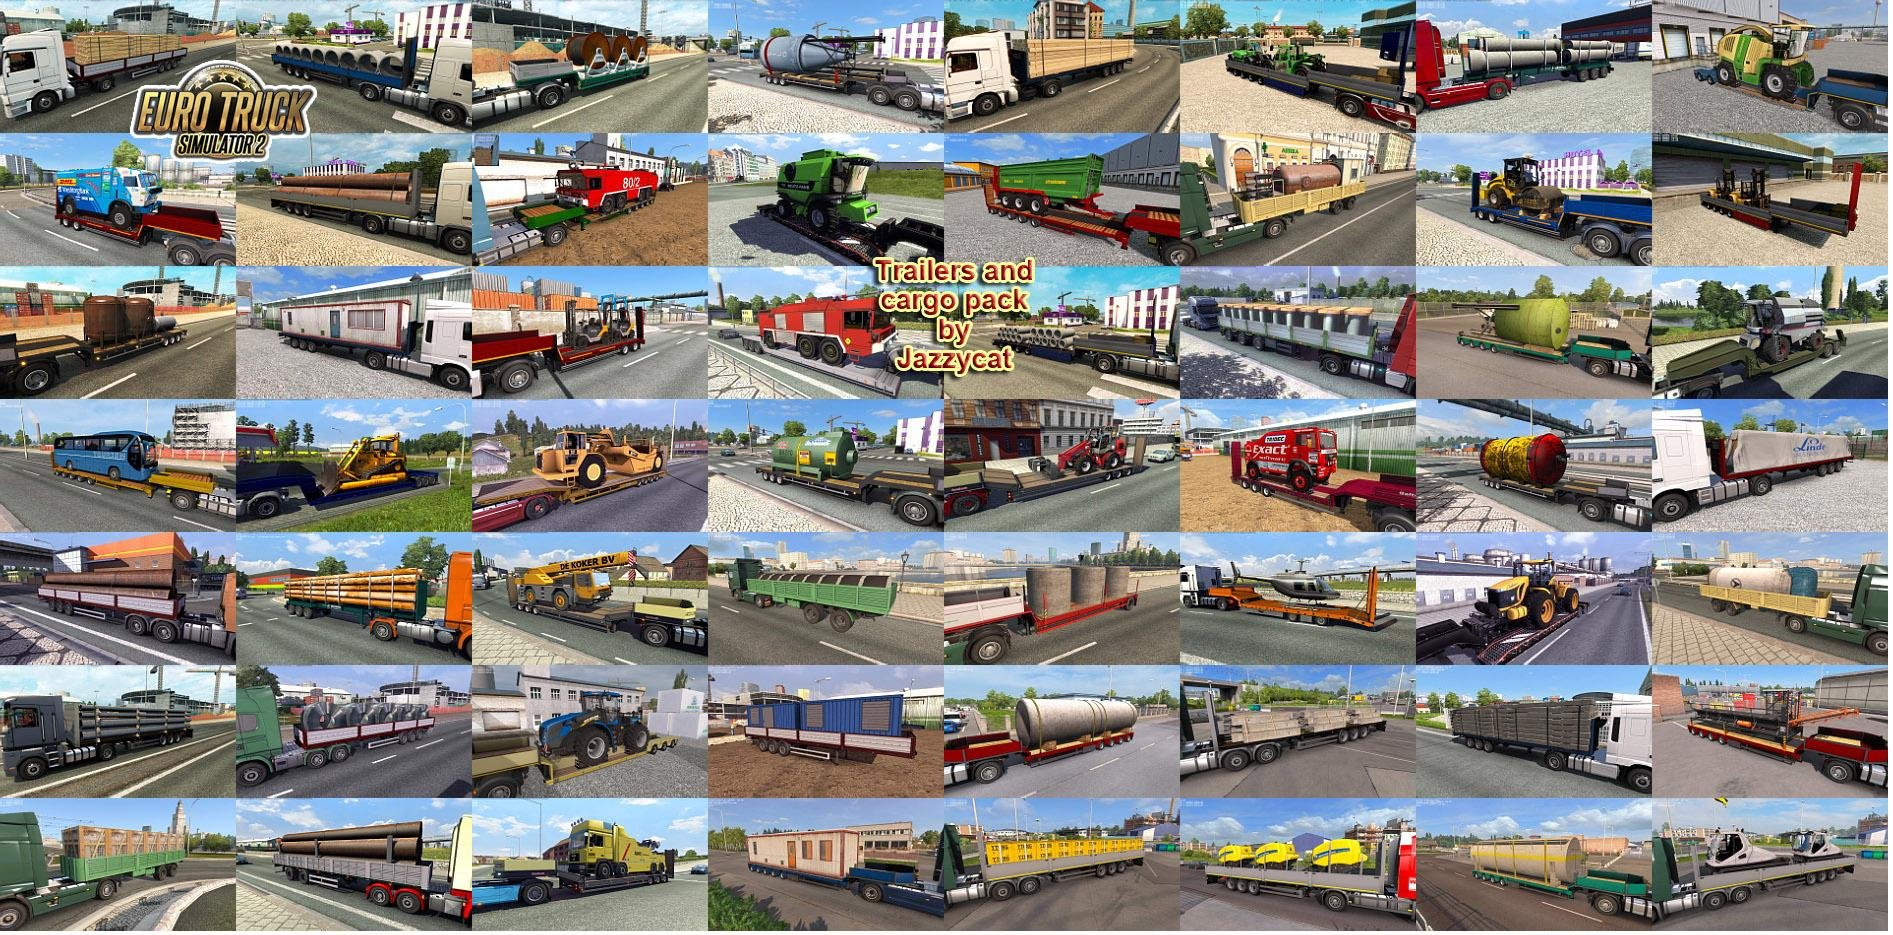 Trailers and cargo pack v4.3 by Jazzycat (1.25.x) for ETS 2